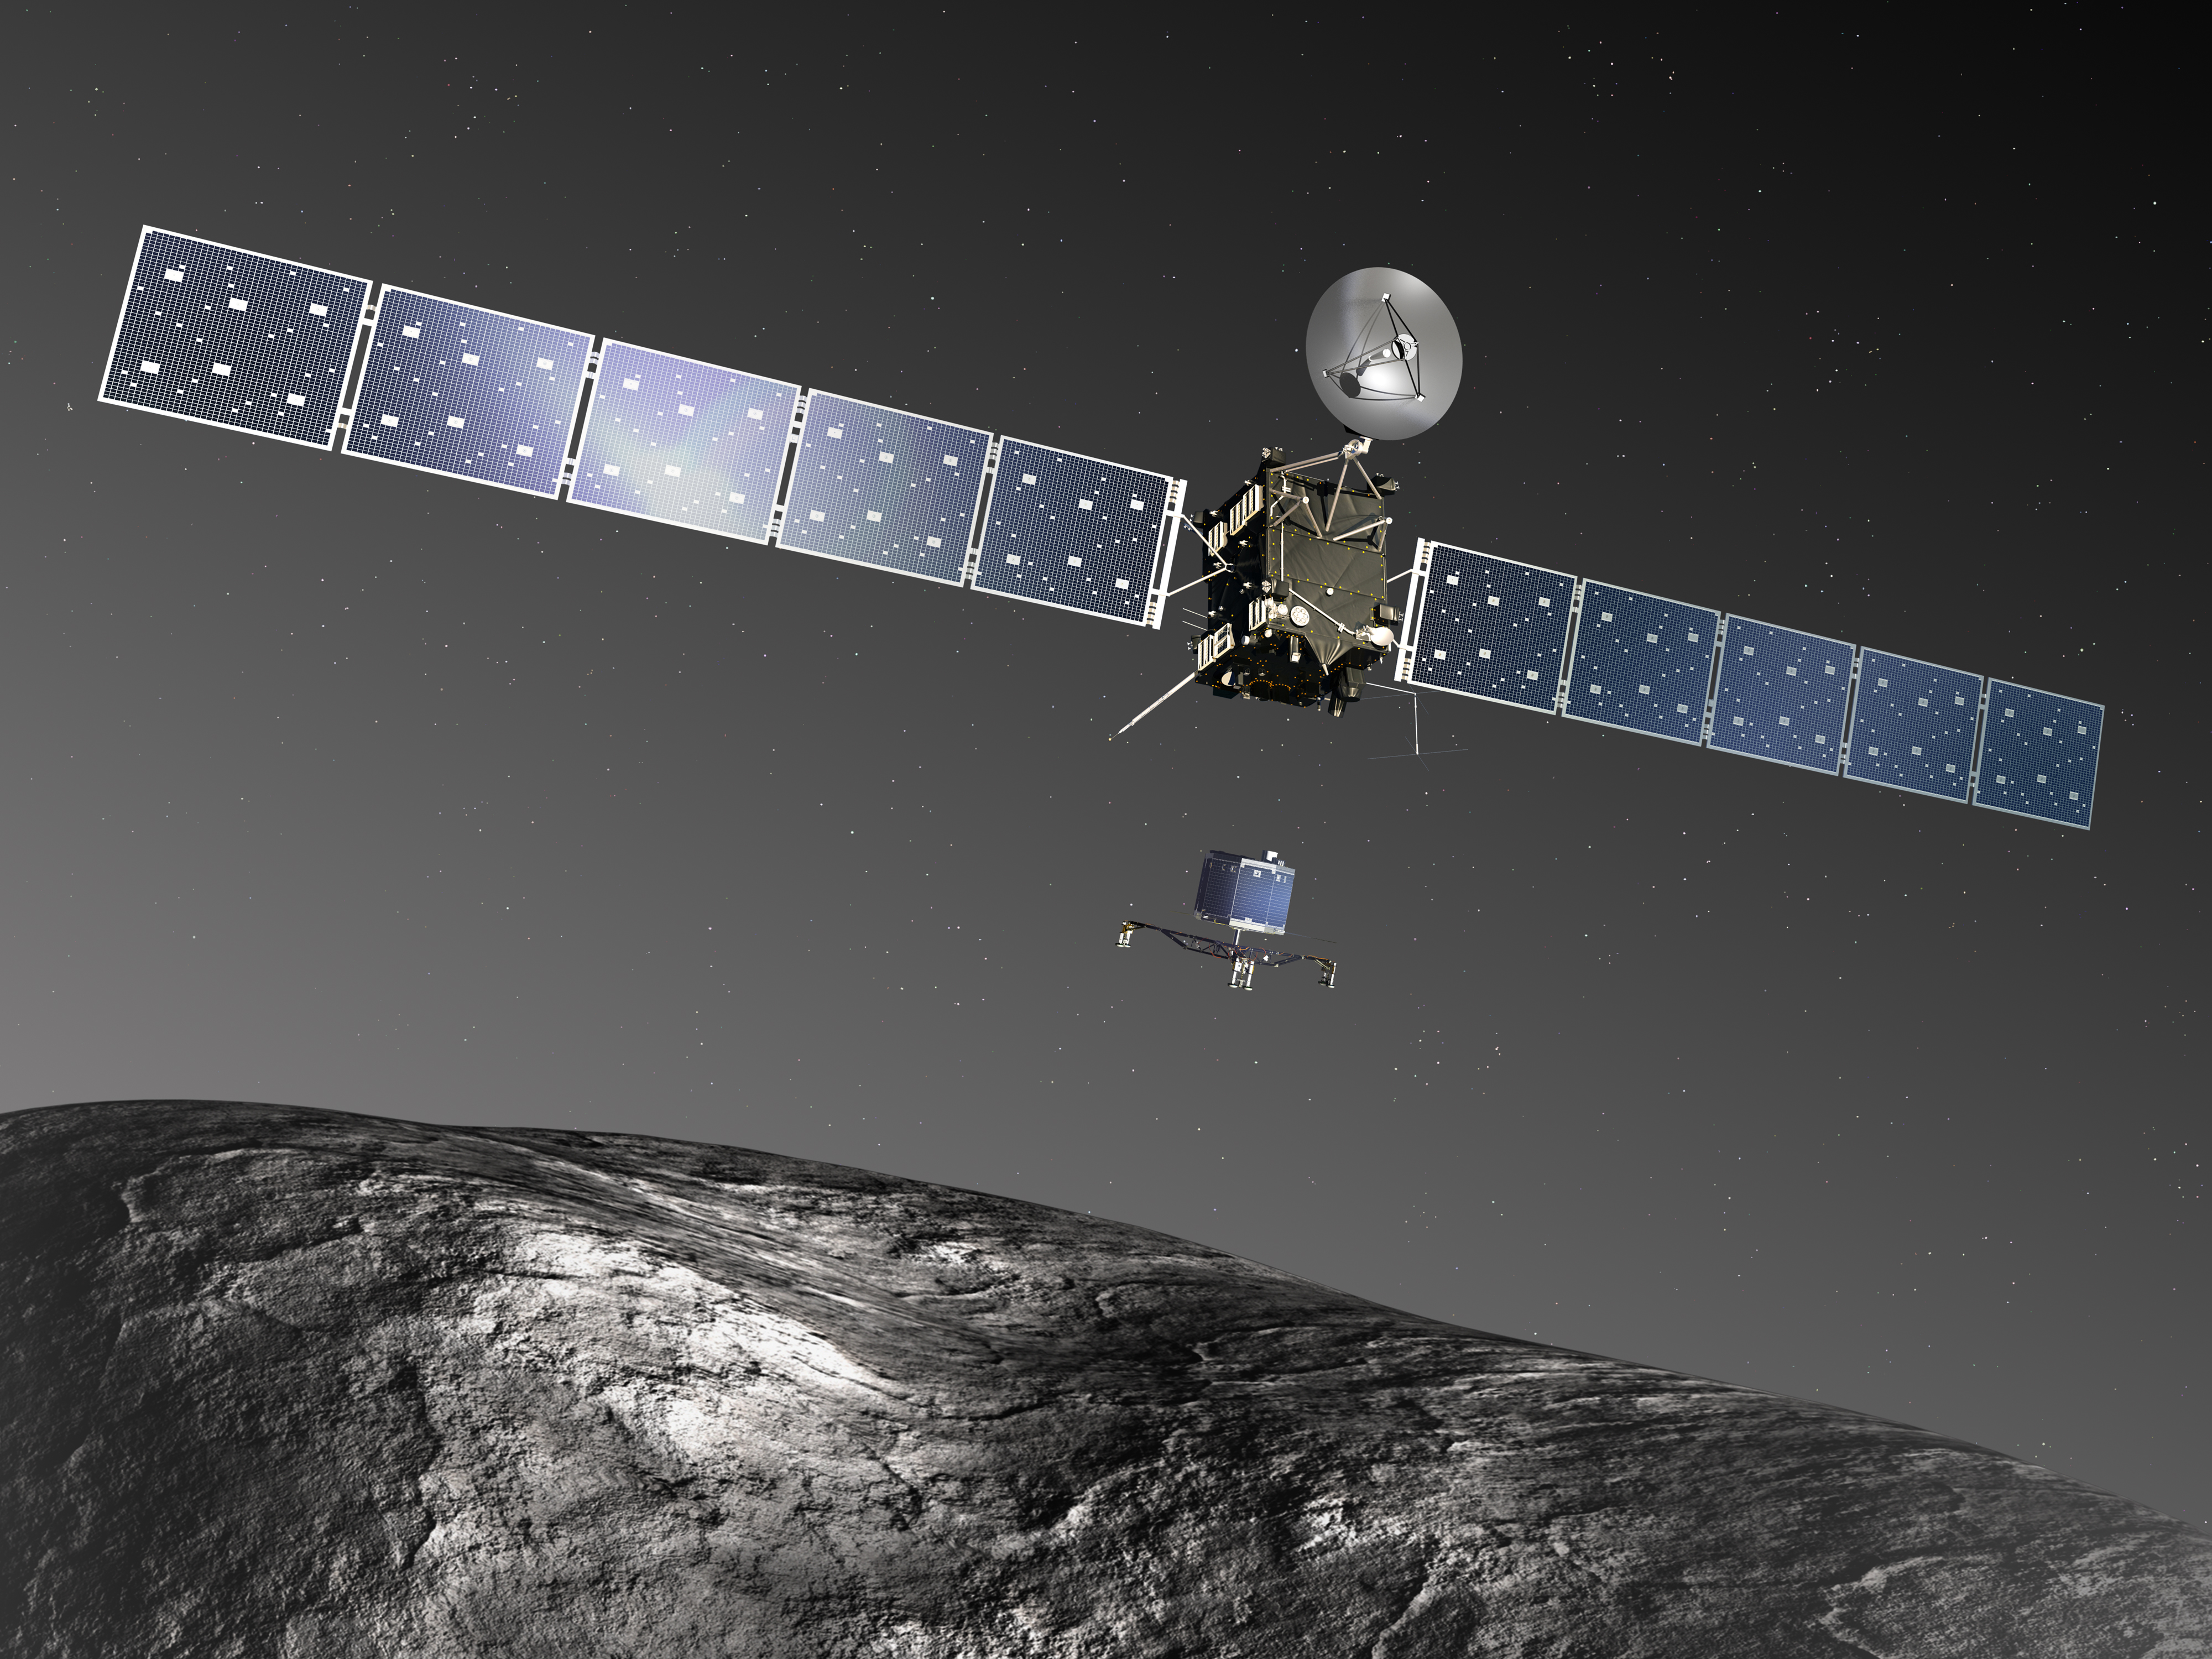 https://hicomm.bg//uploads/articles/201411/38726/Rosetta_Philae_Artist_Impression_Close_4k.jpg